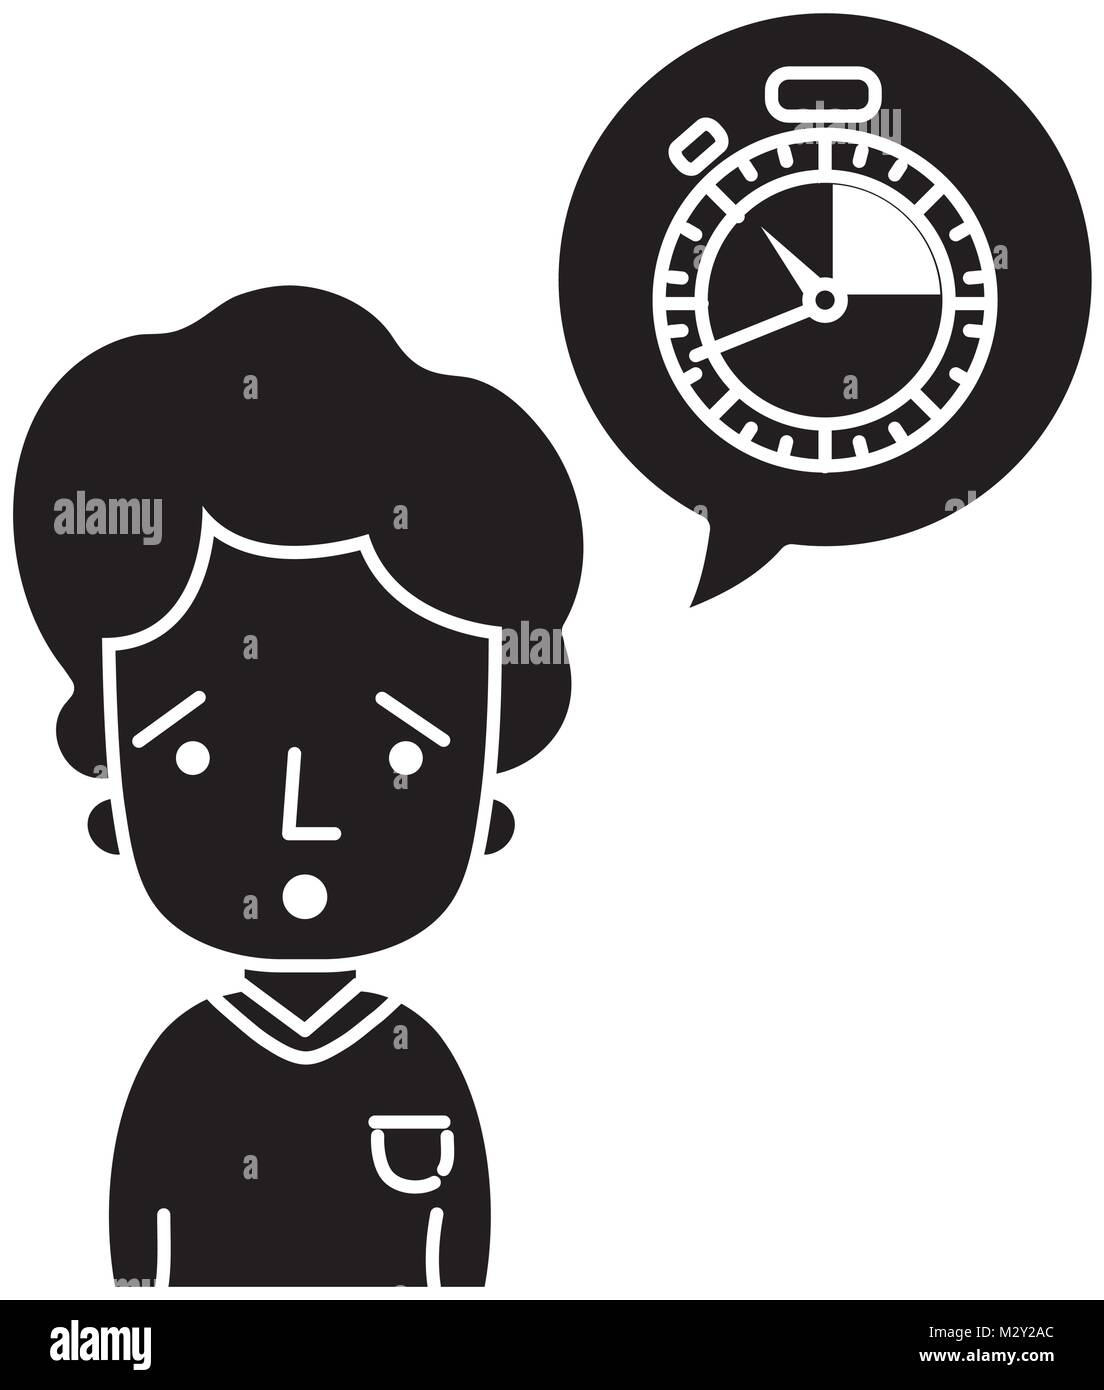 silhouette man with t-shirt and choronometer inside chat bubble - Stock Image